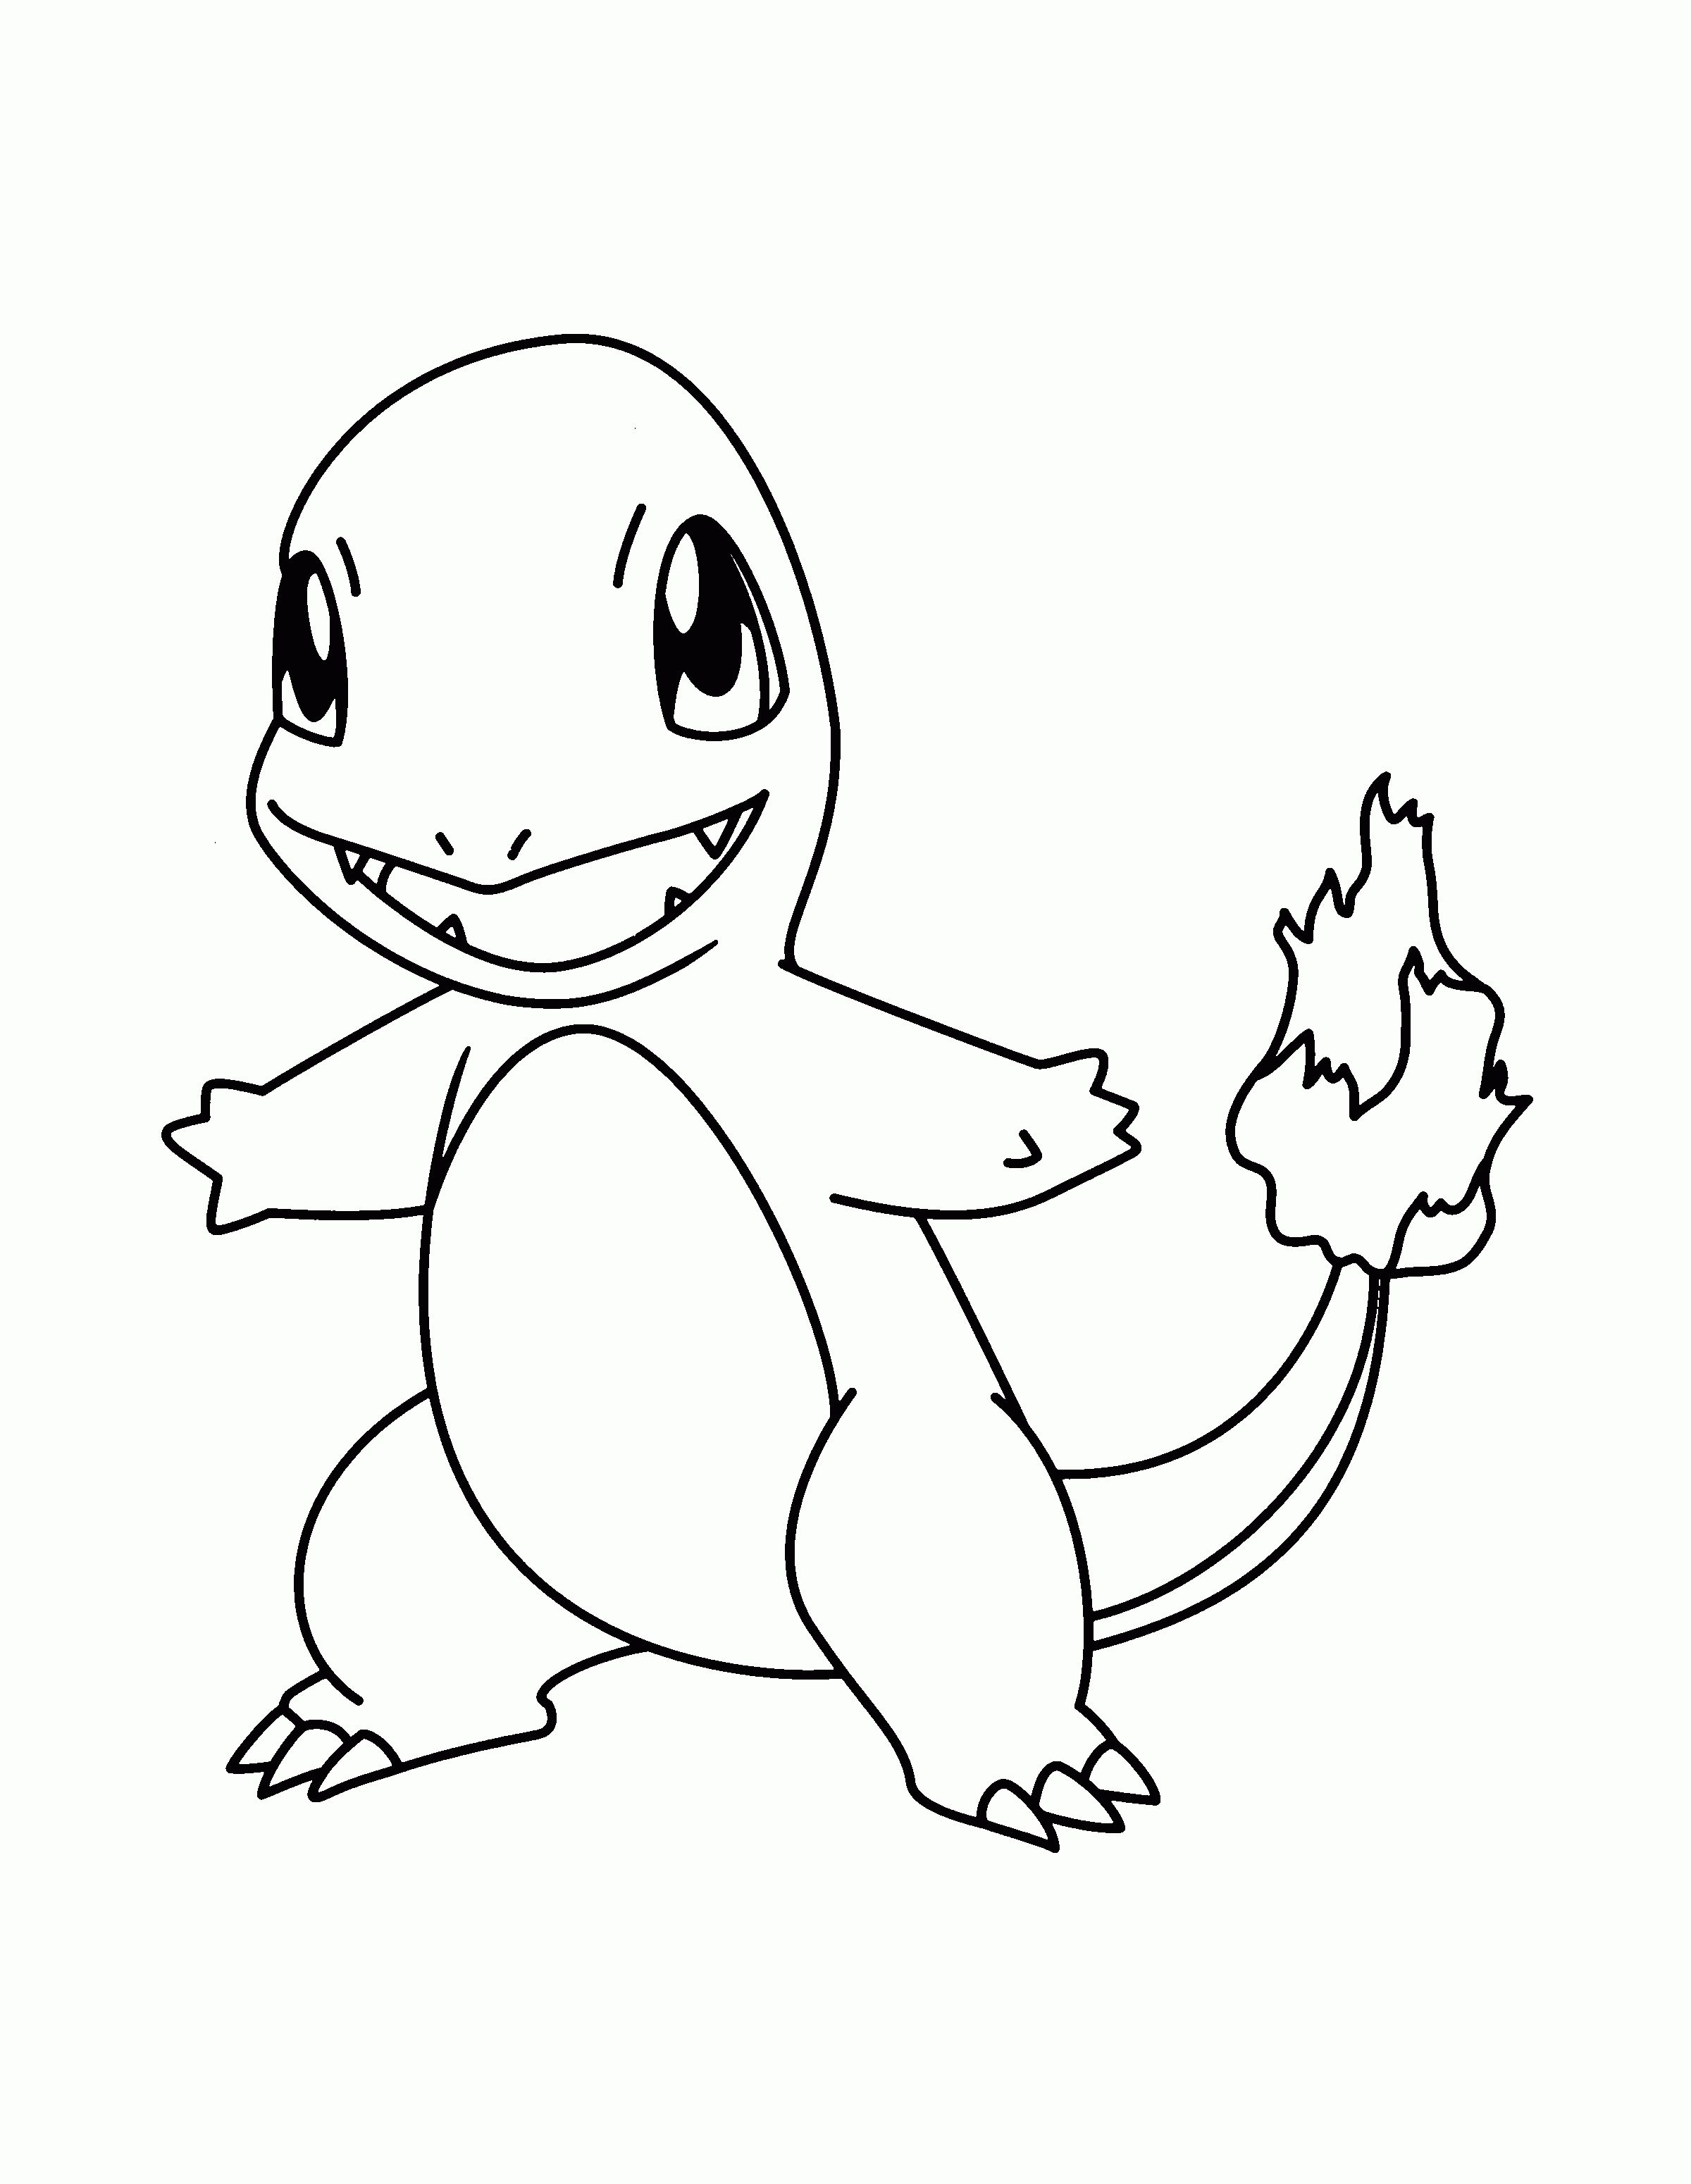 Kleurplaten Pokemon Squirtle.Pokemons Kleurplaten Charmander Pokemons Pokemon Coloring Pages